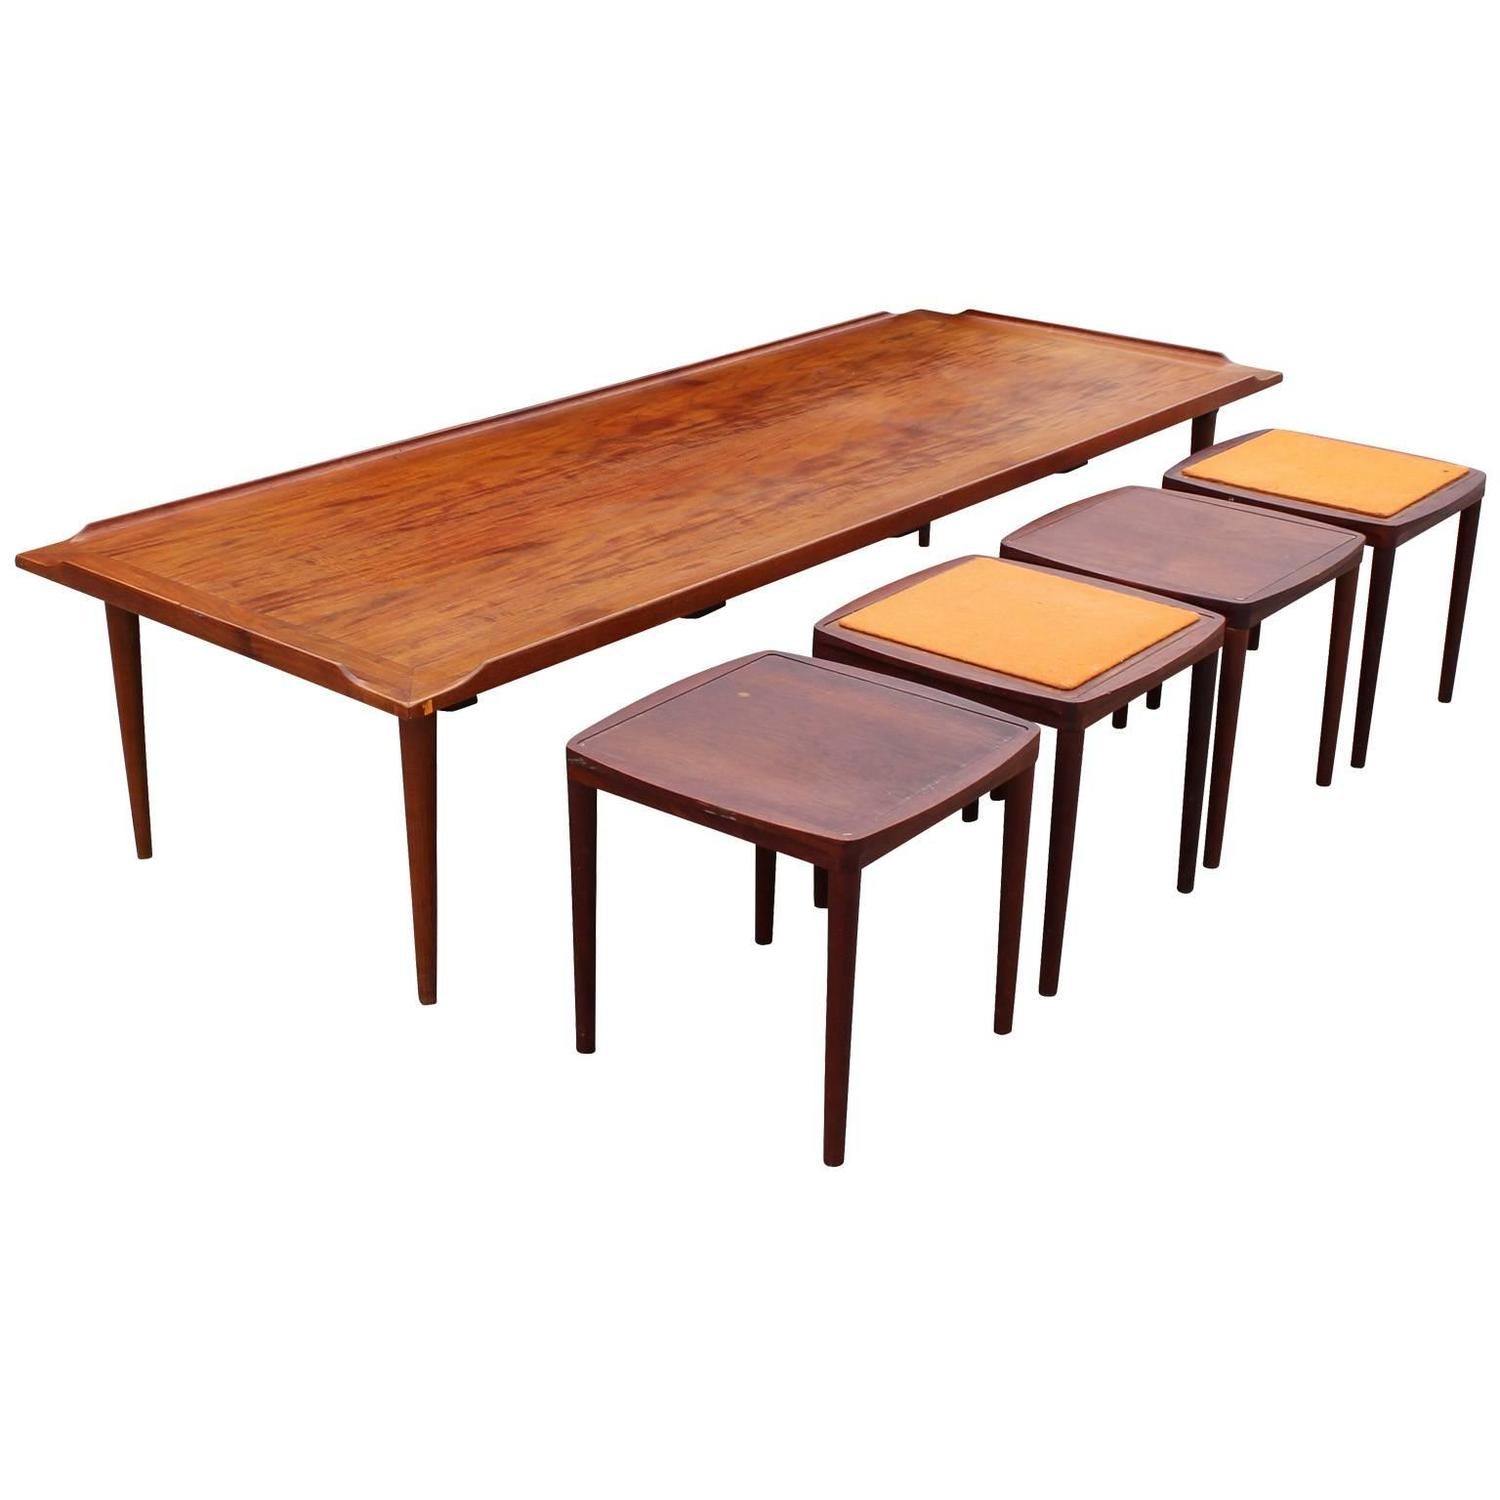 Fantastic Danish Coffee Table With Reversible Stools Tables For Sale At 1stdibs